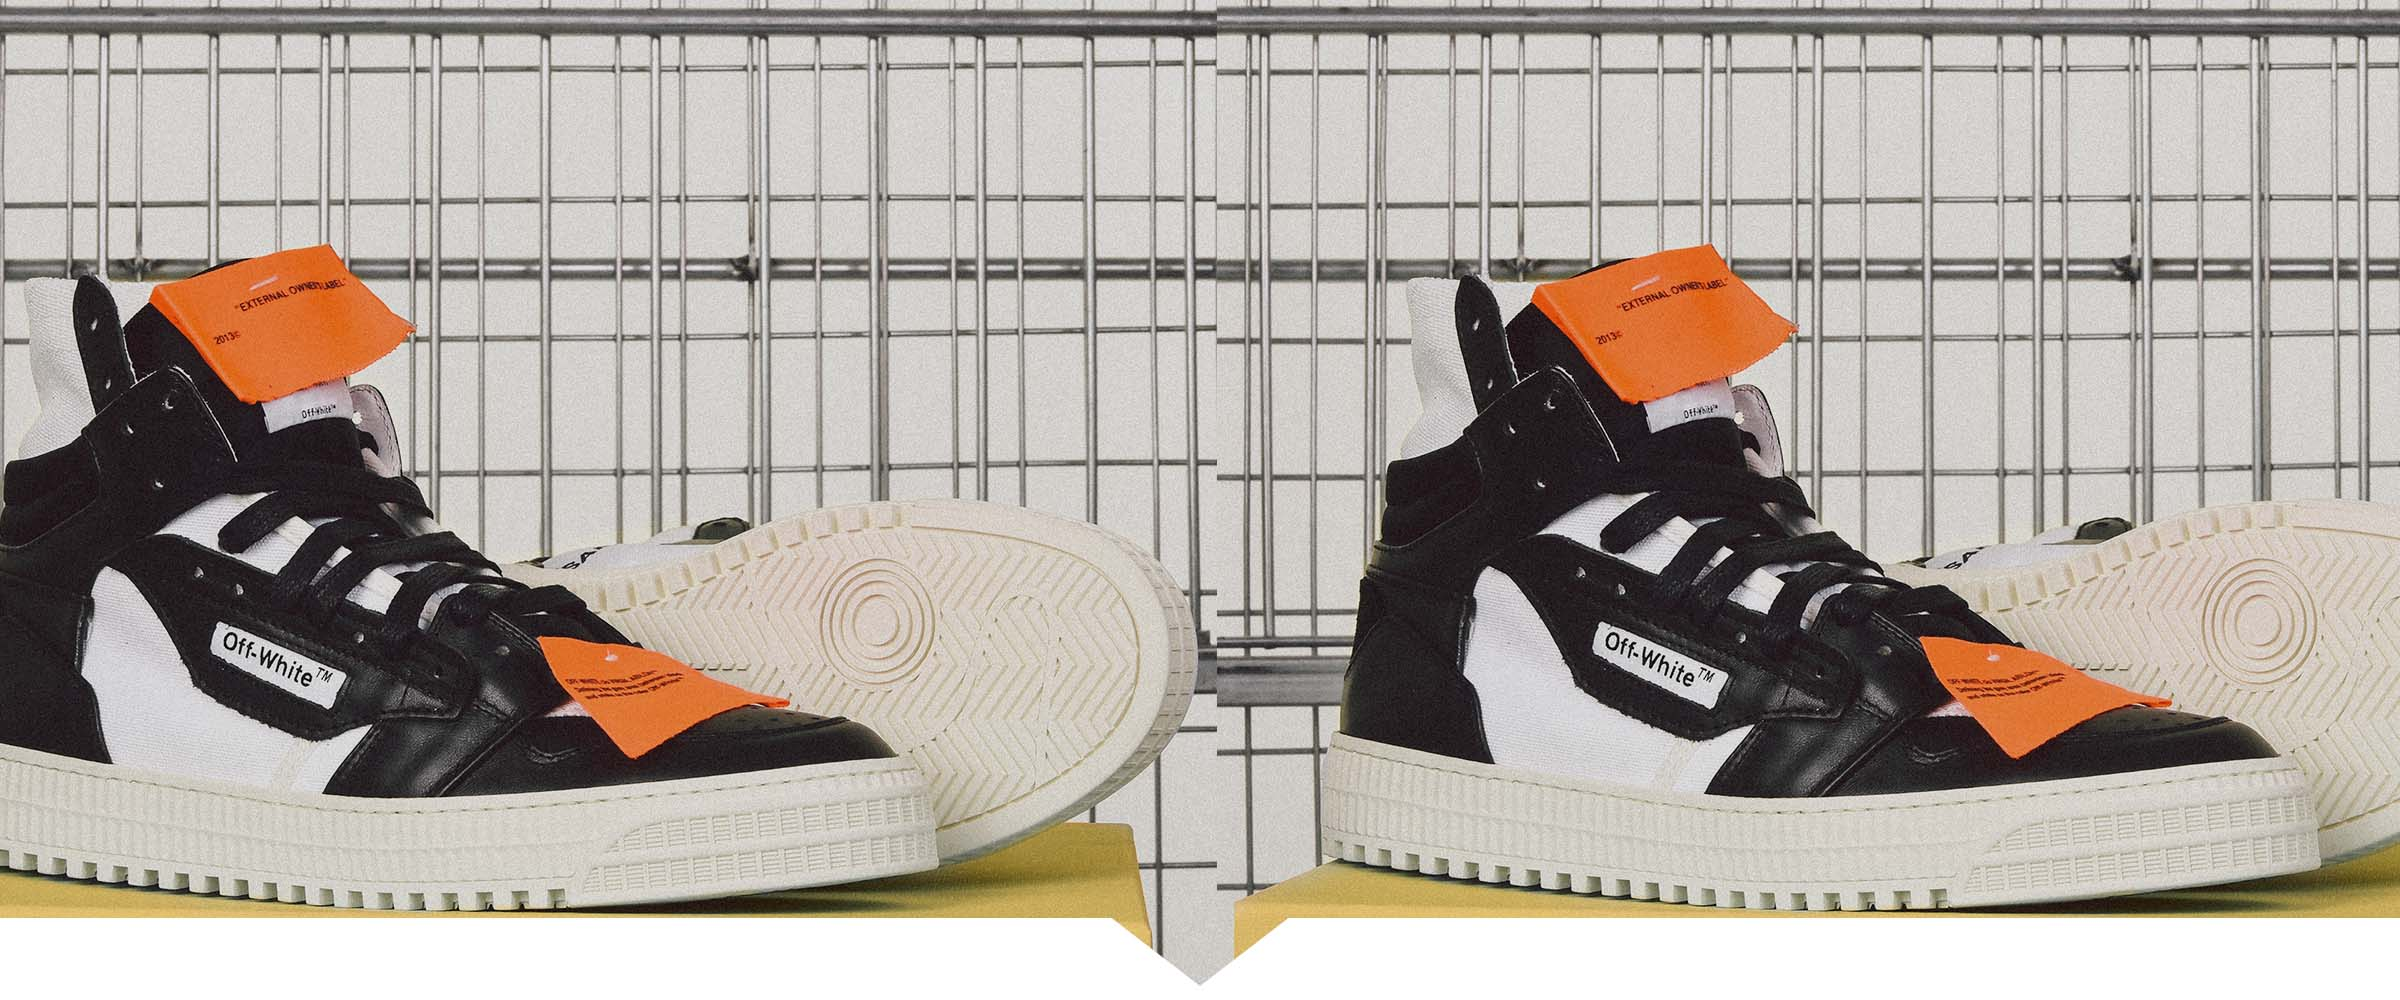 Sneaker Series: Off-White